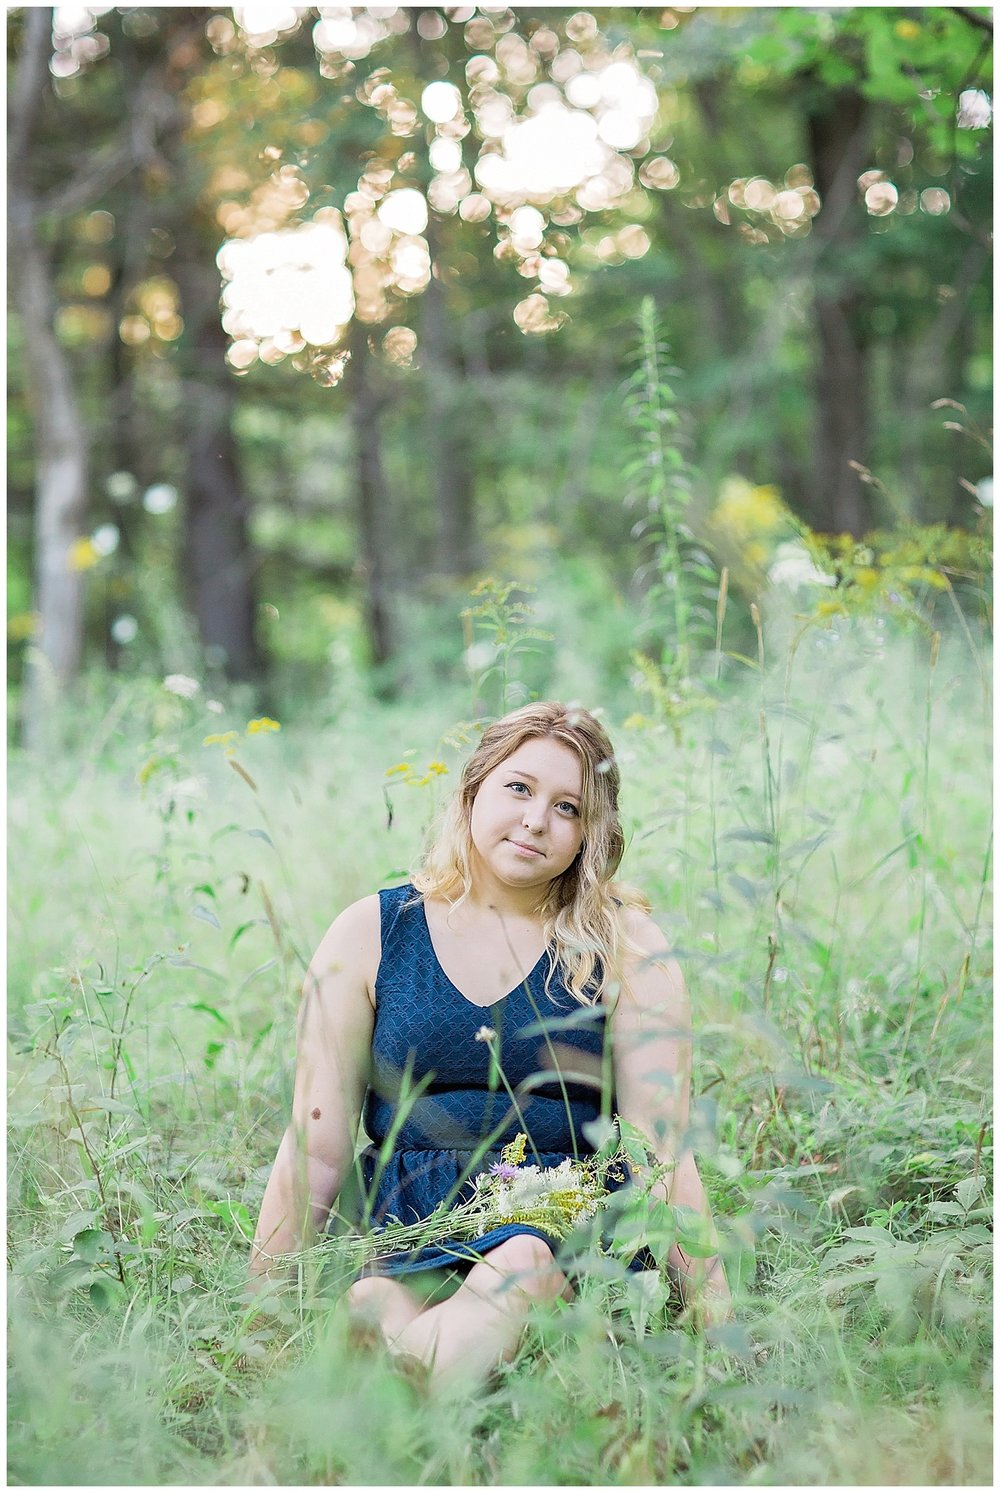 Hannah houghton school -letchworth state park senior session - lass and beau-131_Buffalo wedding photography.jpg